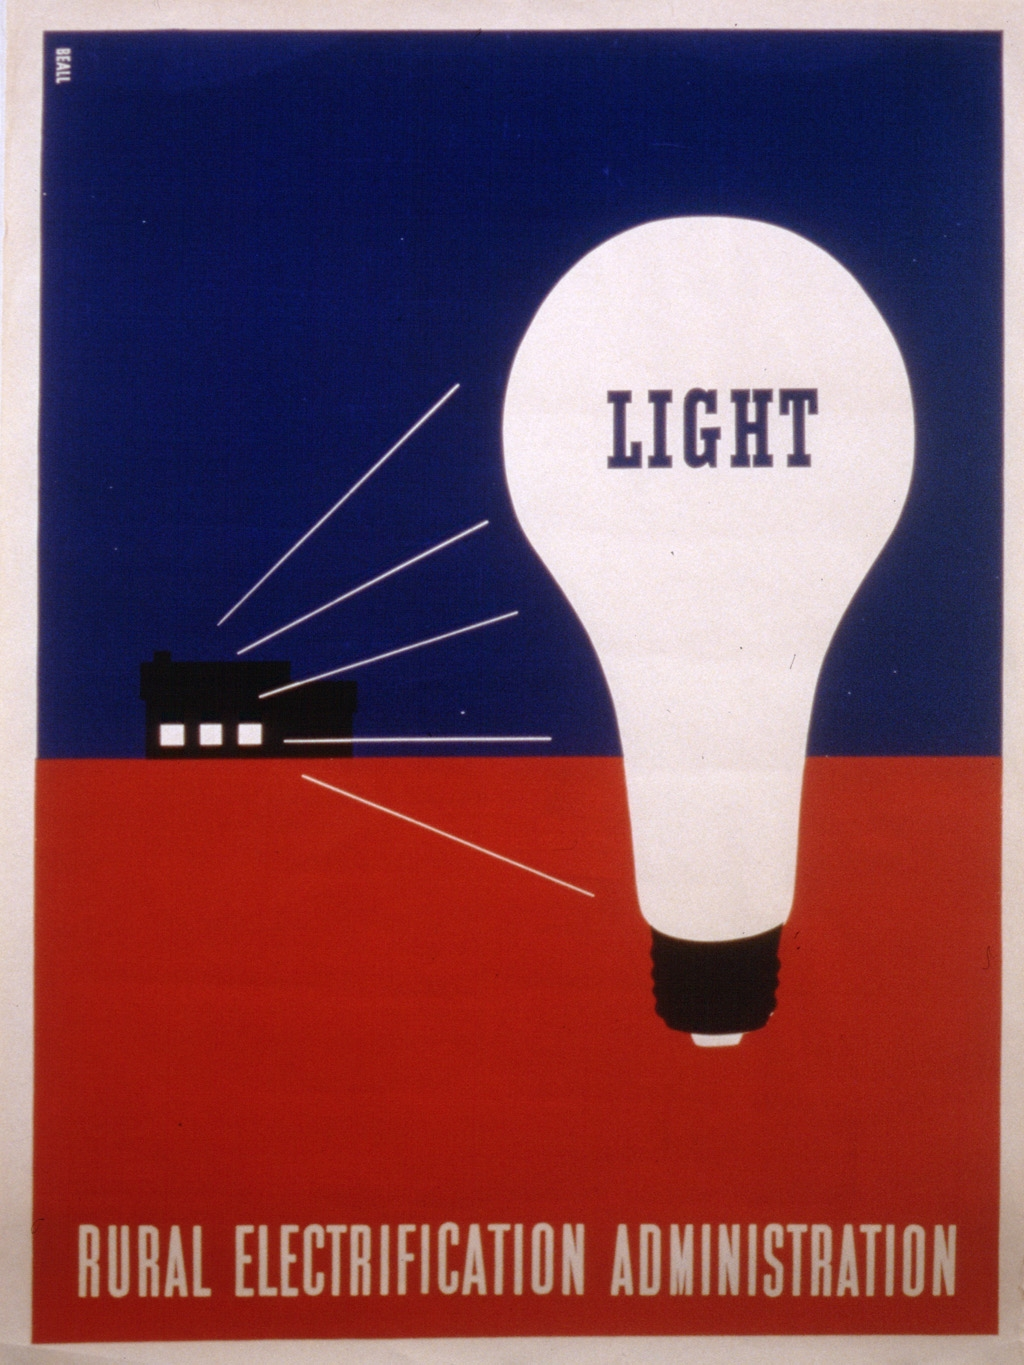 Light : Rural Electrification Administration